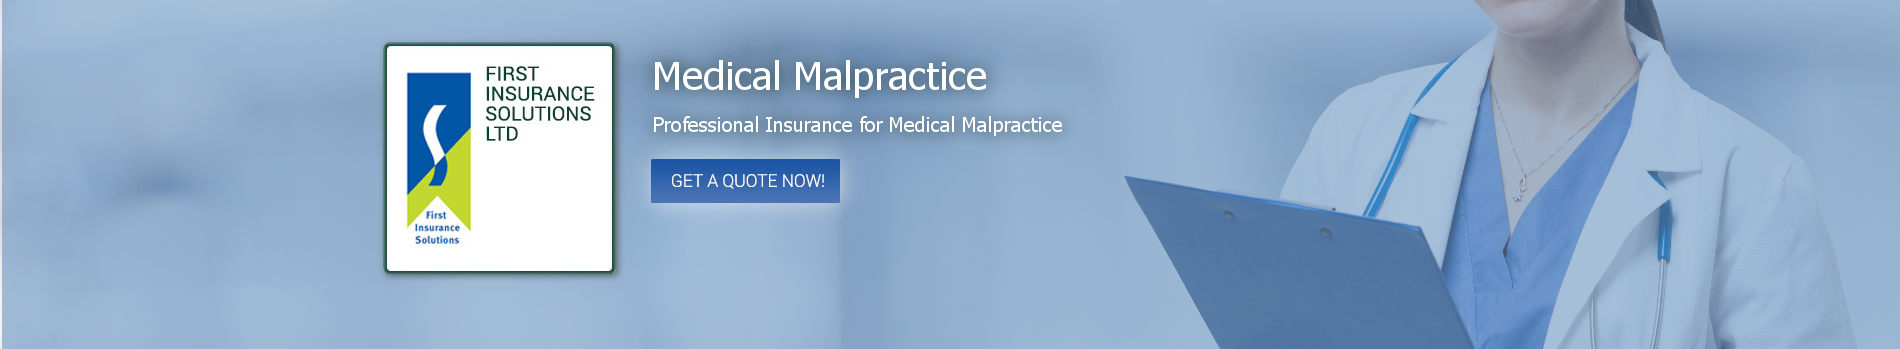 medical-malpractice-banner